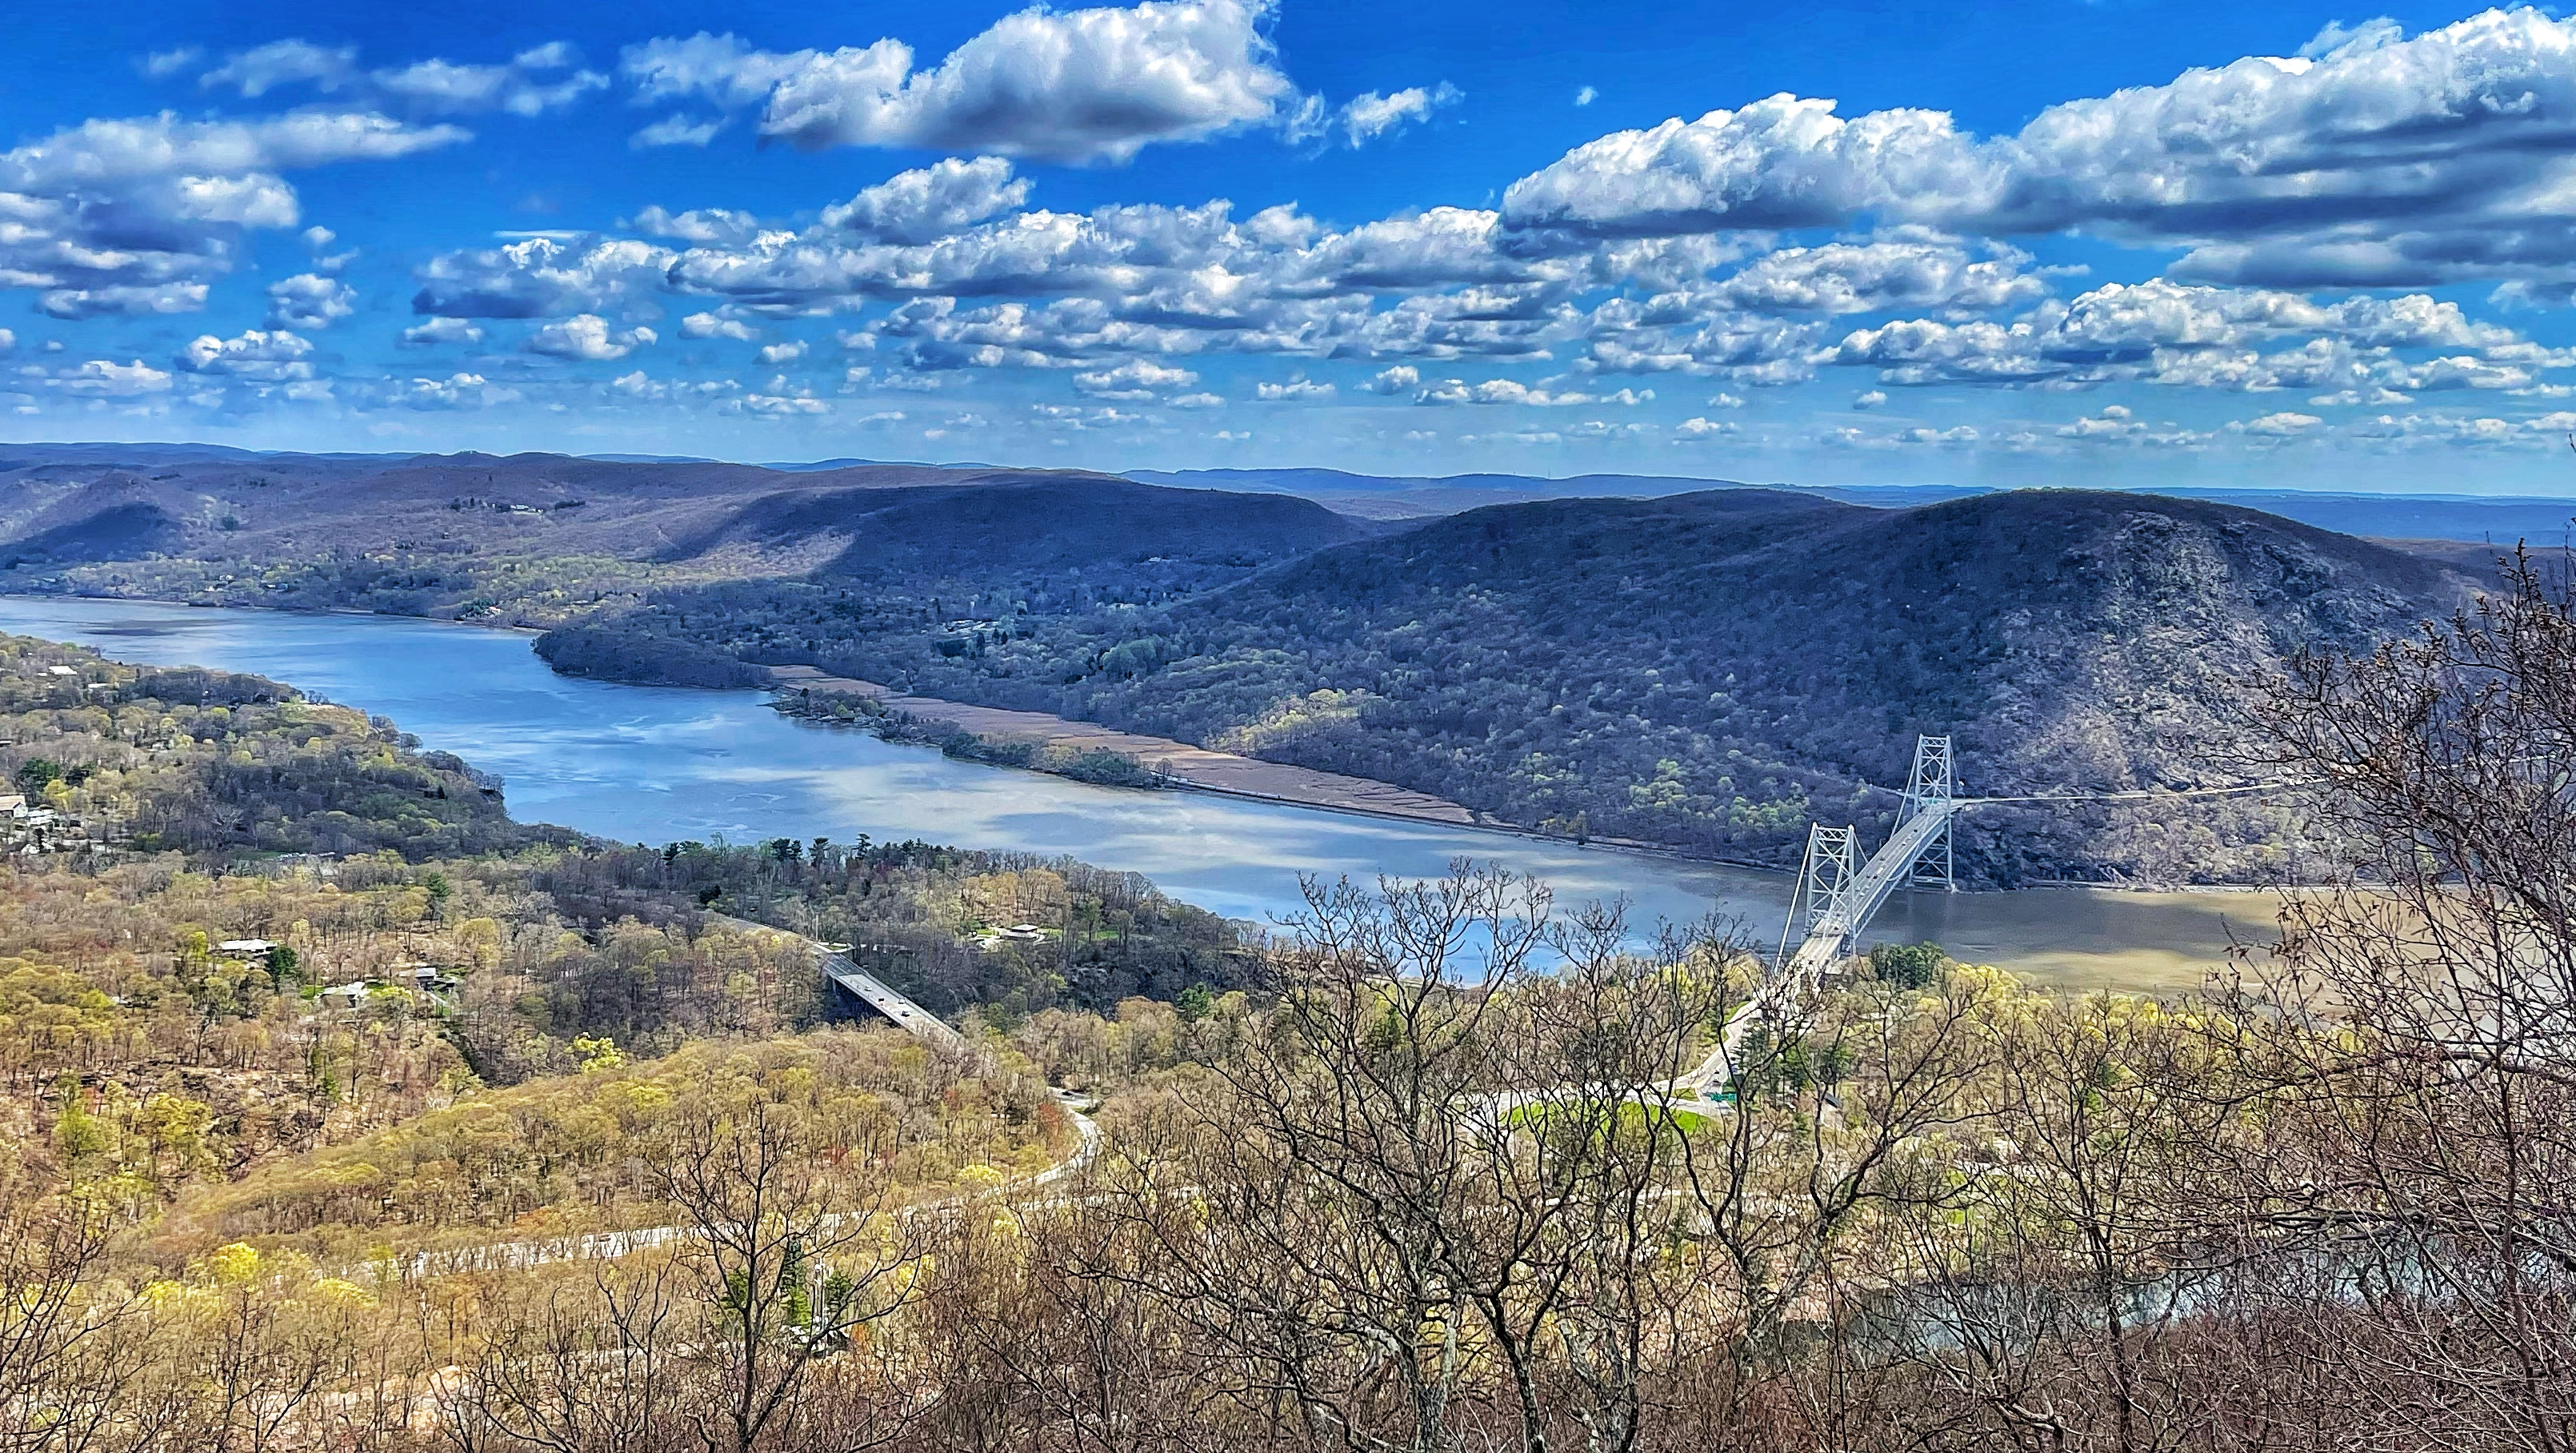 View of the Hudson River, Bear Mountain Bridge, and Anthonys Nose